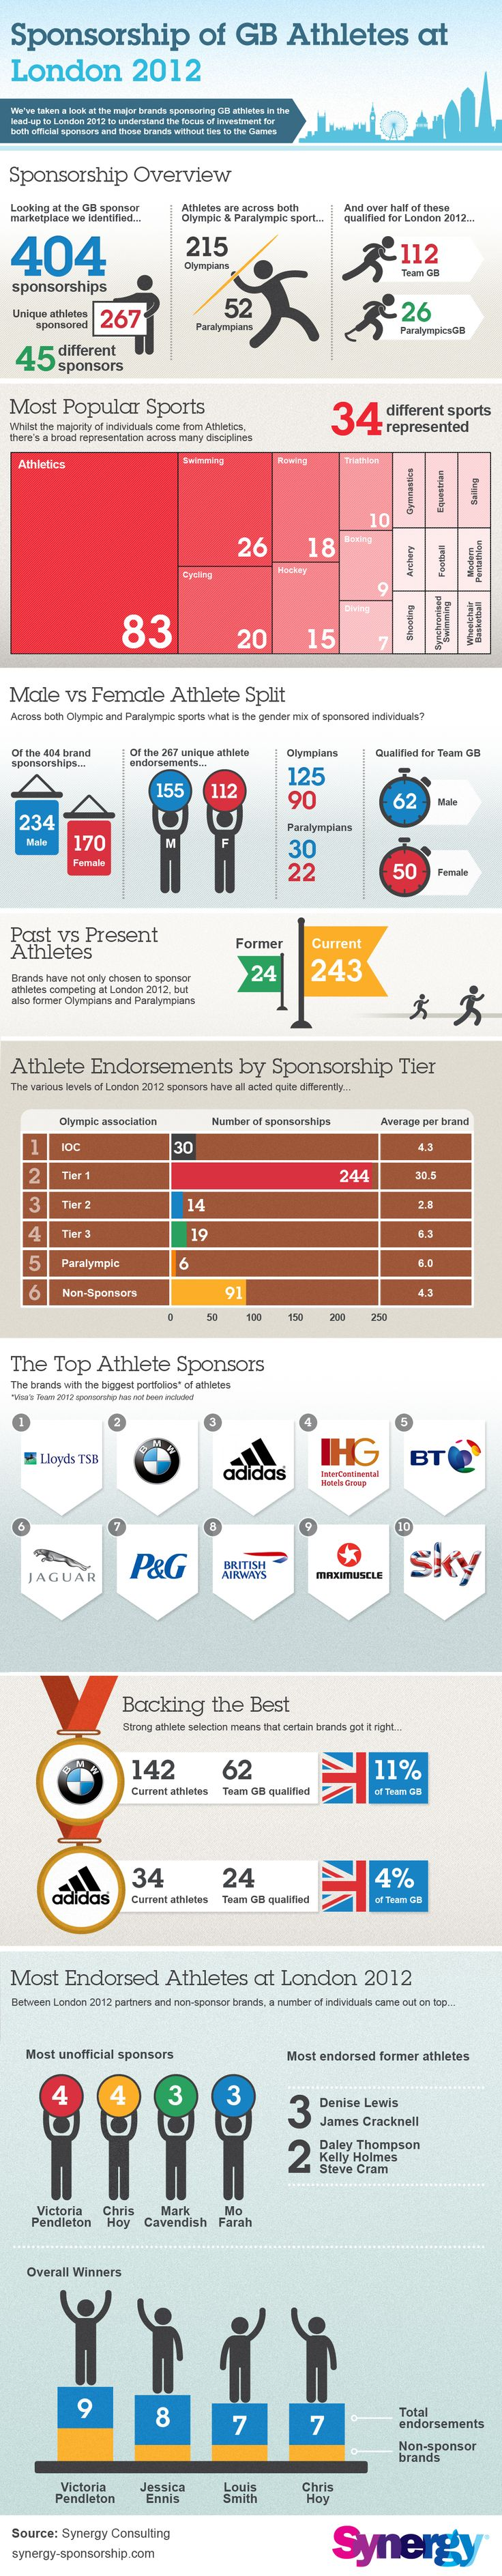 Sponsorship of GB Athletes at London 2012